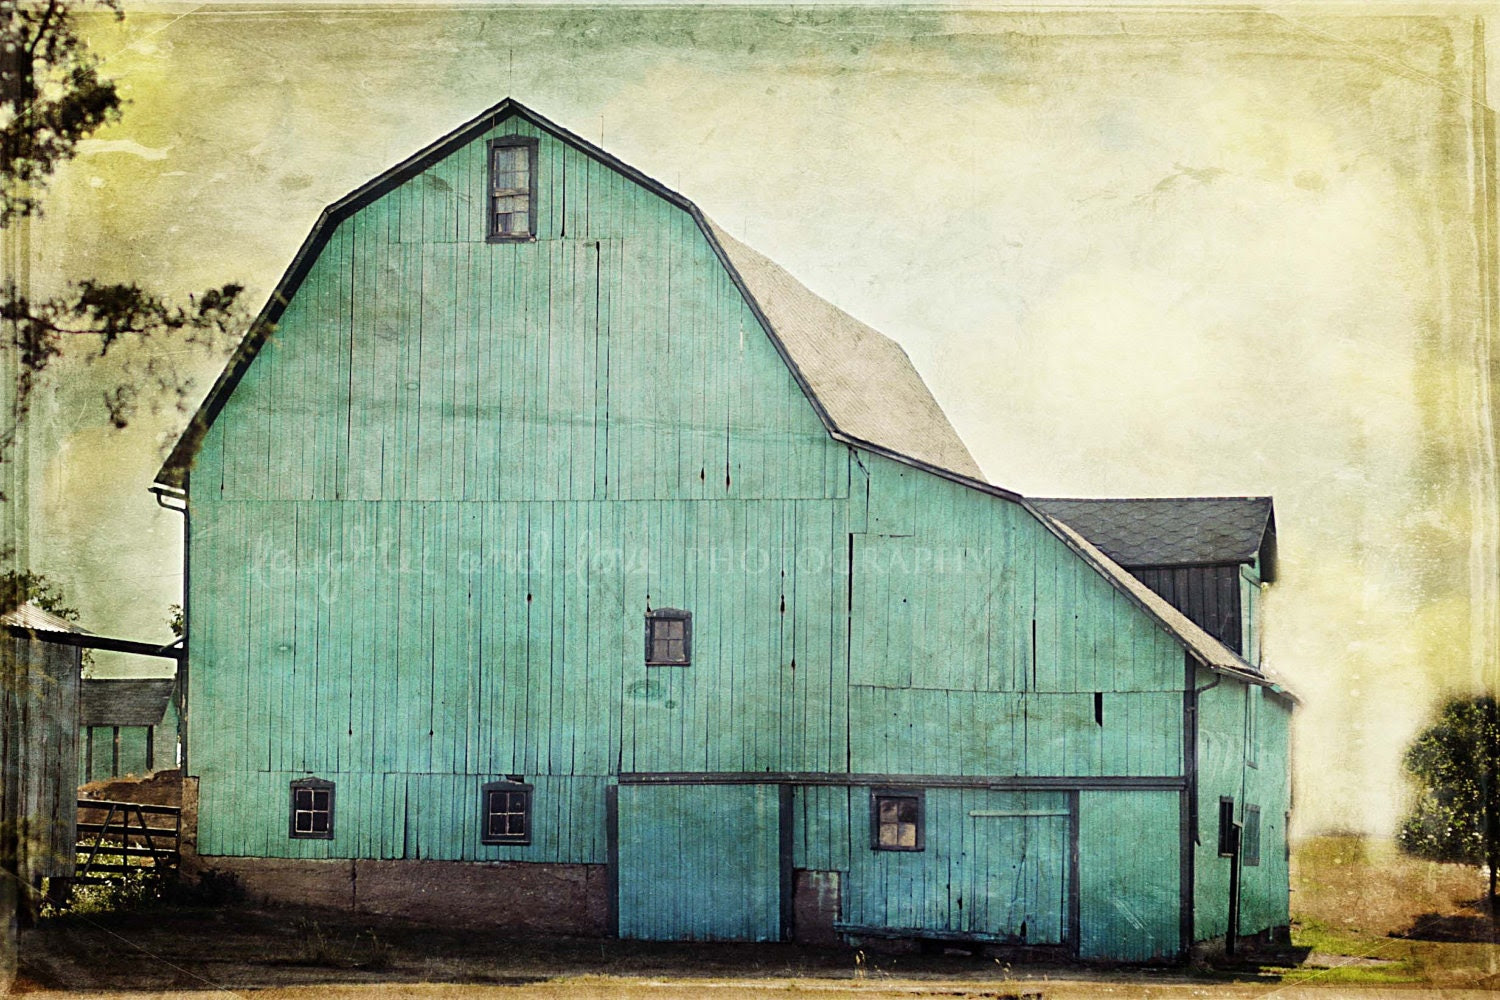 Aqua Barn 8x12 Fine Art Photography Farm Country Shabby Chic Green Blue Rustic Vintage Home Decor Wall Art